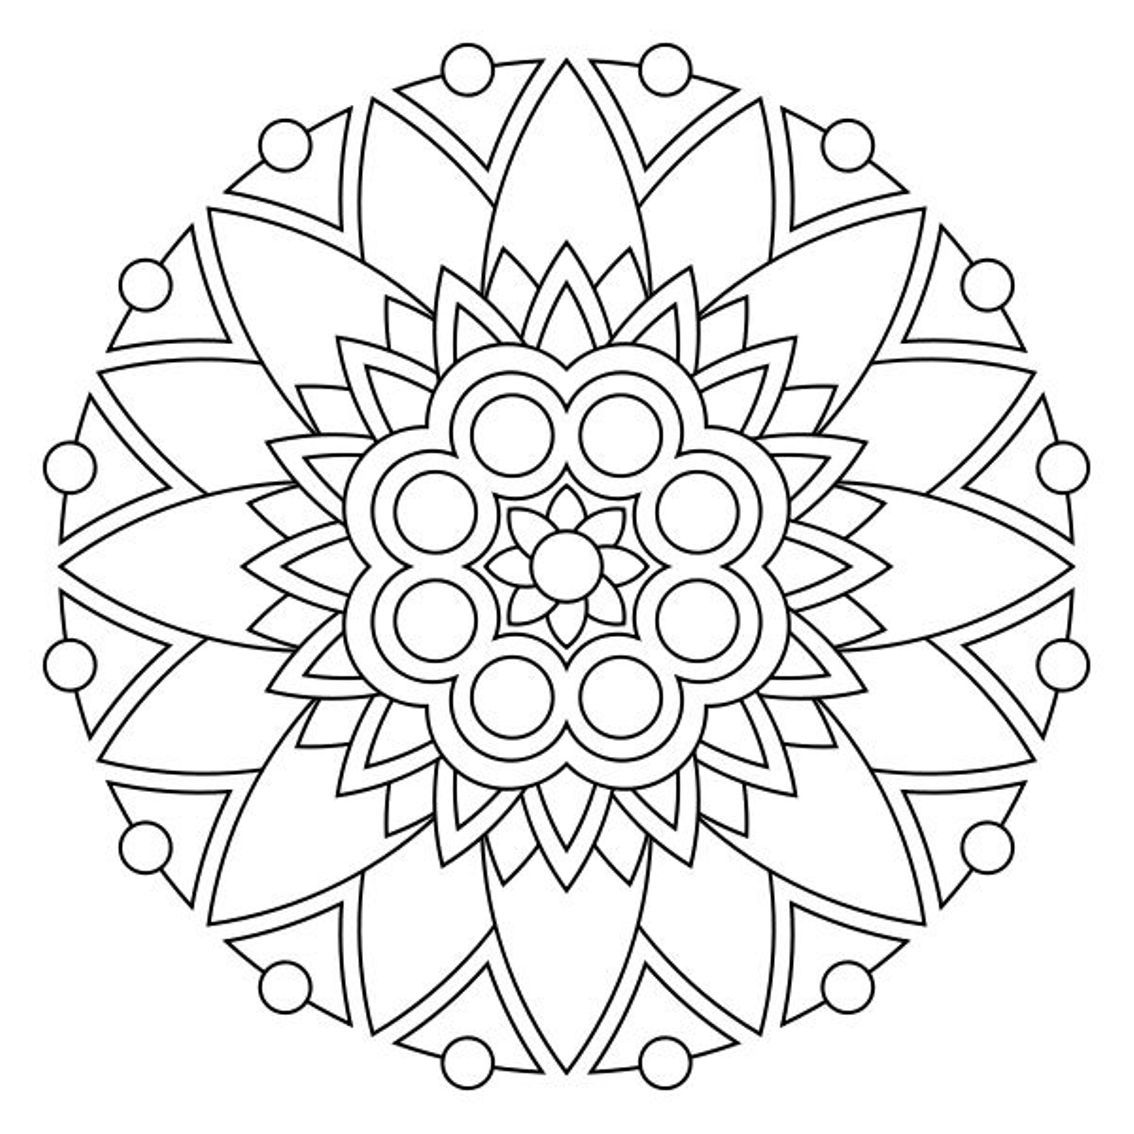 Colouring in pages mandala - Mandala Coloring Pages Free Printable